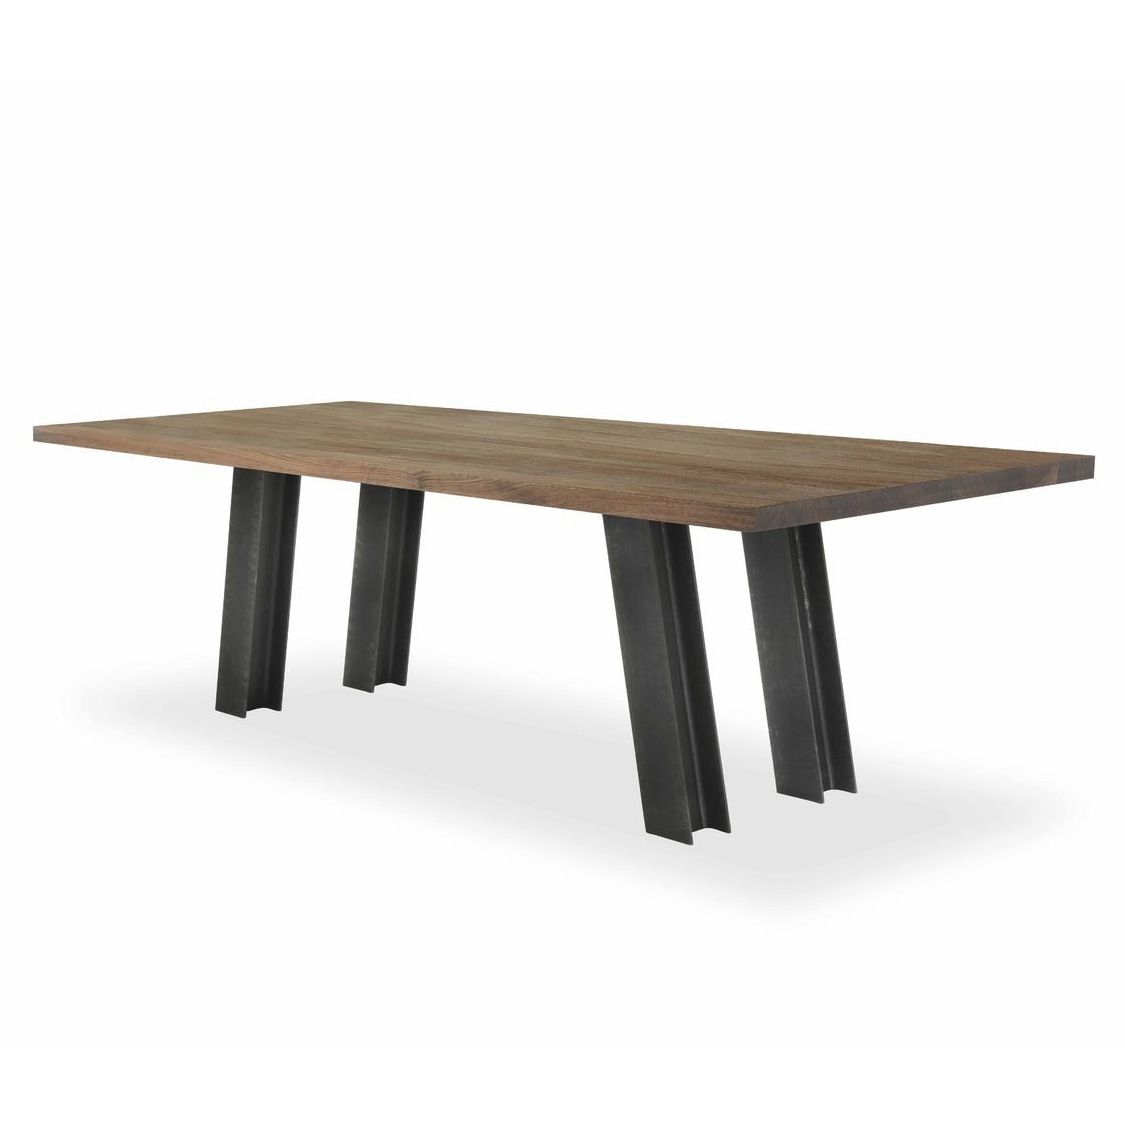 Luca dining table from Riva 1920